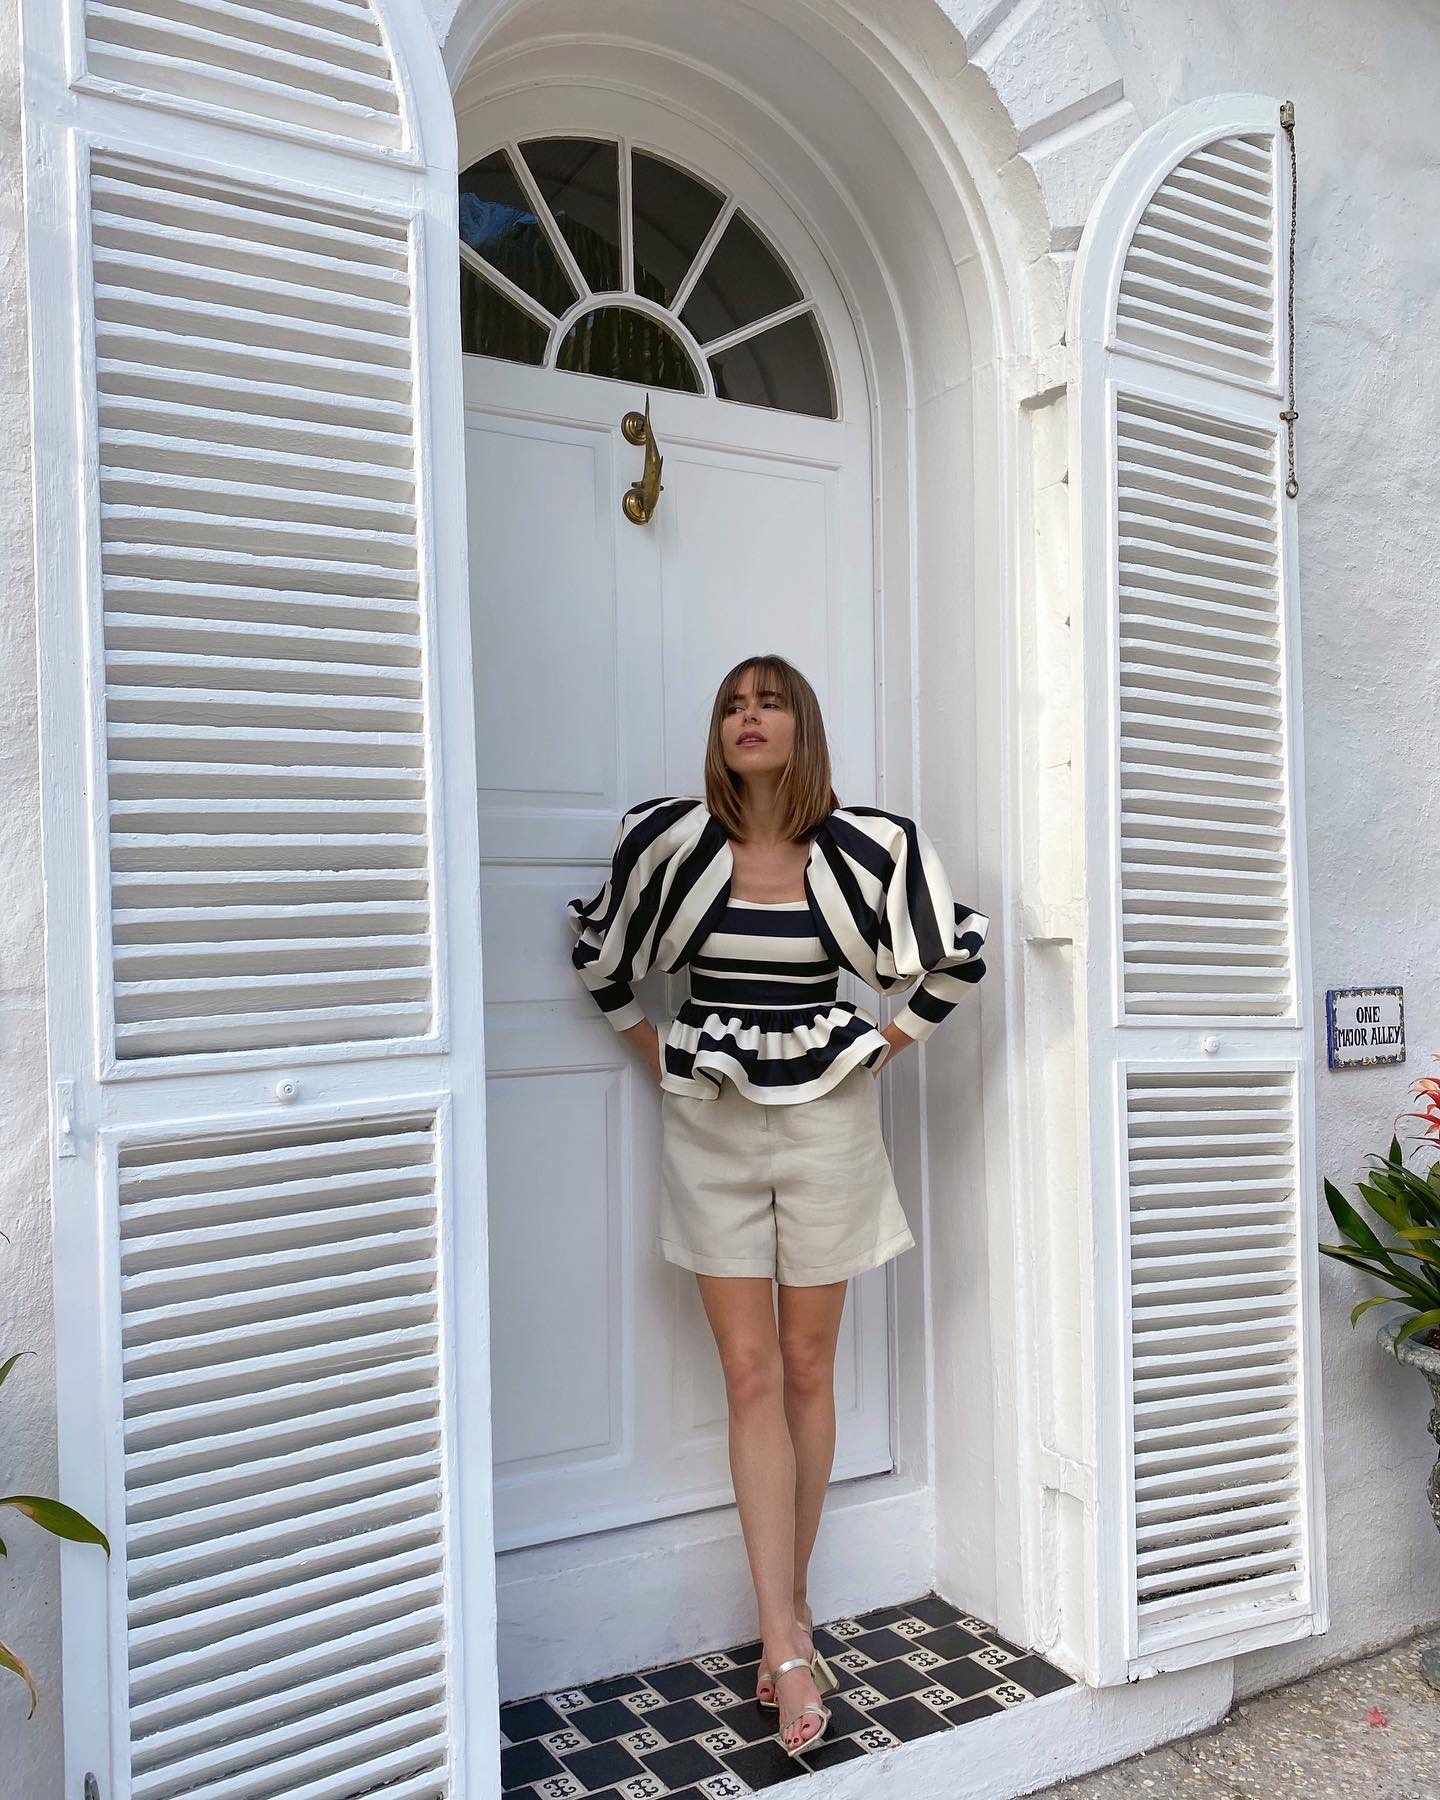 Lifestyle Blogger Stephanie Hill wears an #ootd featuring a blouse by Eugenia Fernandez on The Style Bungalow